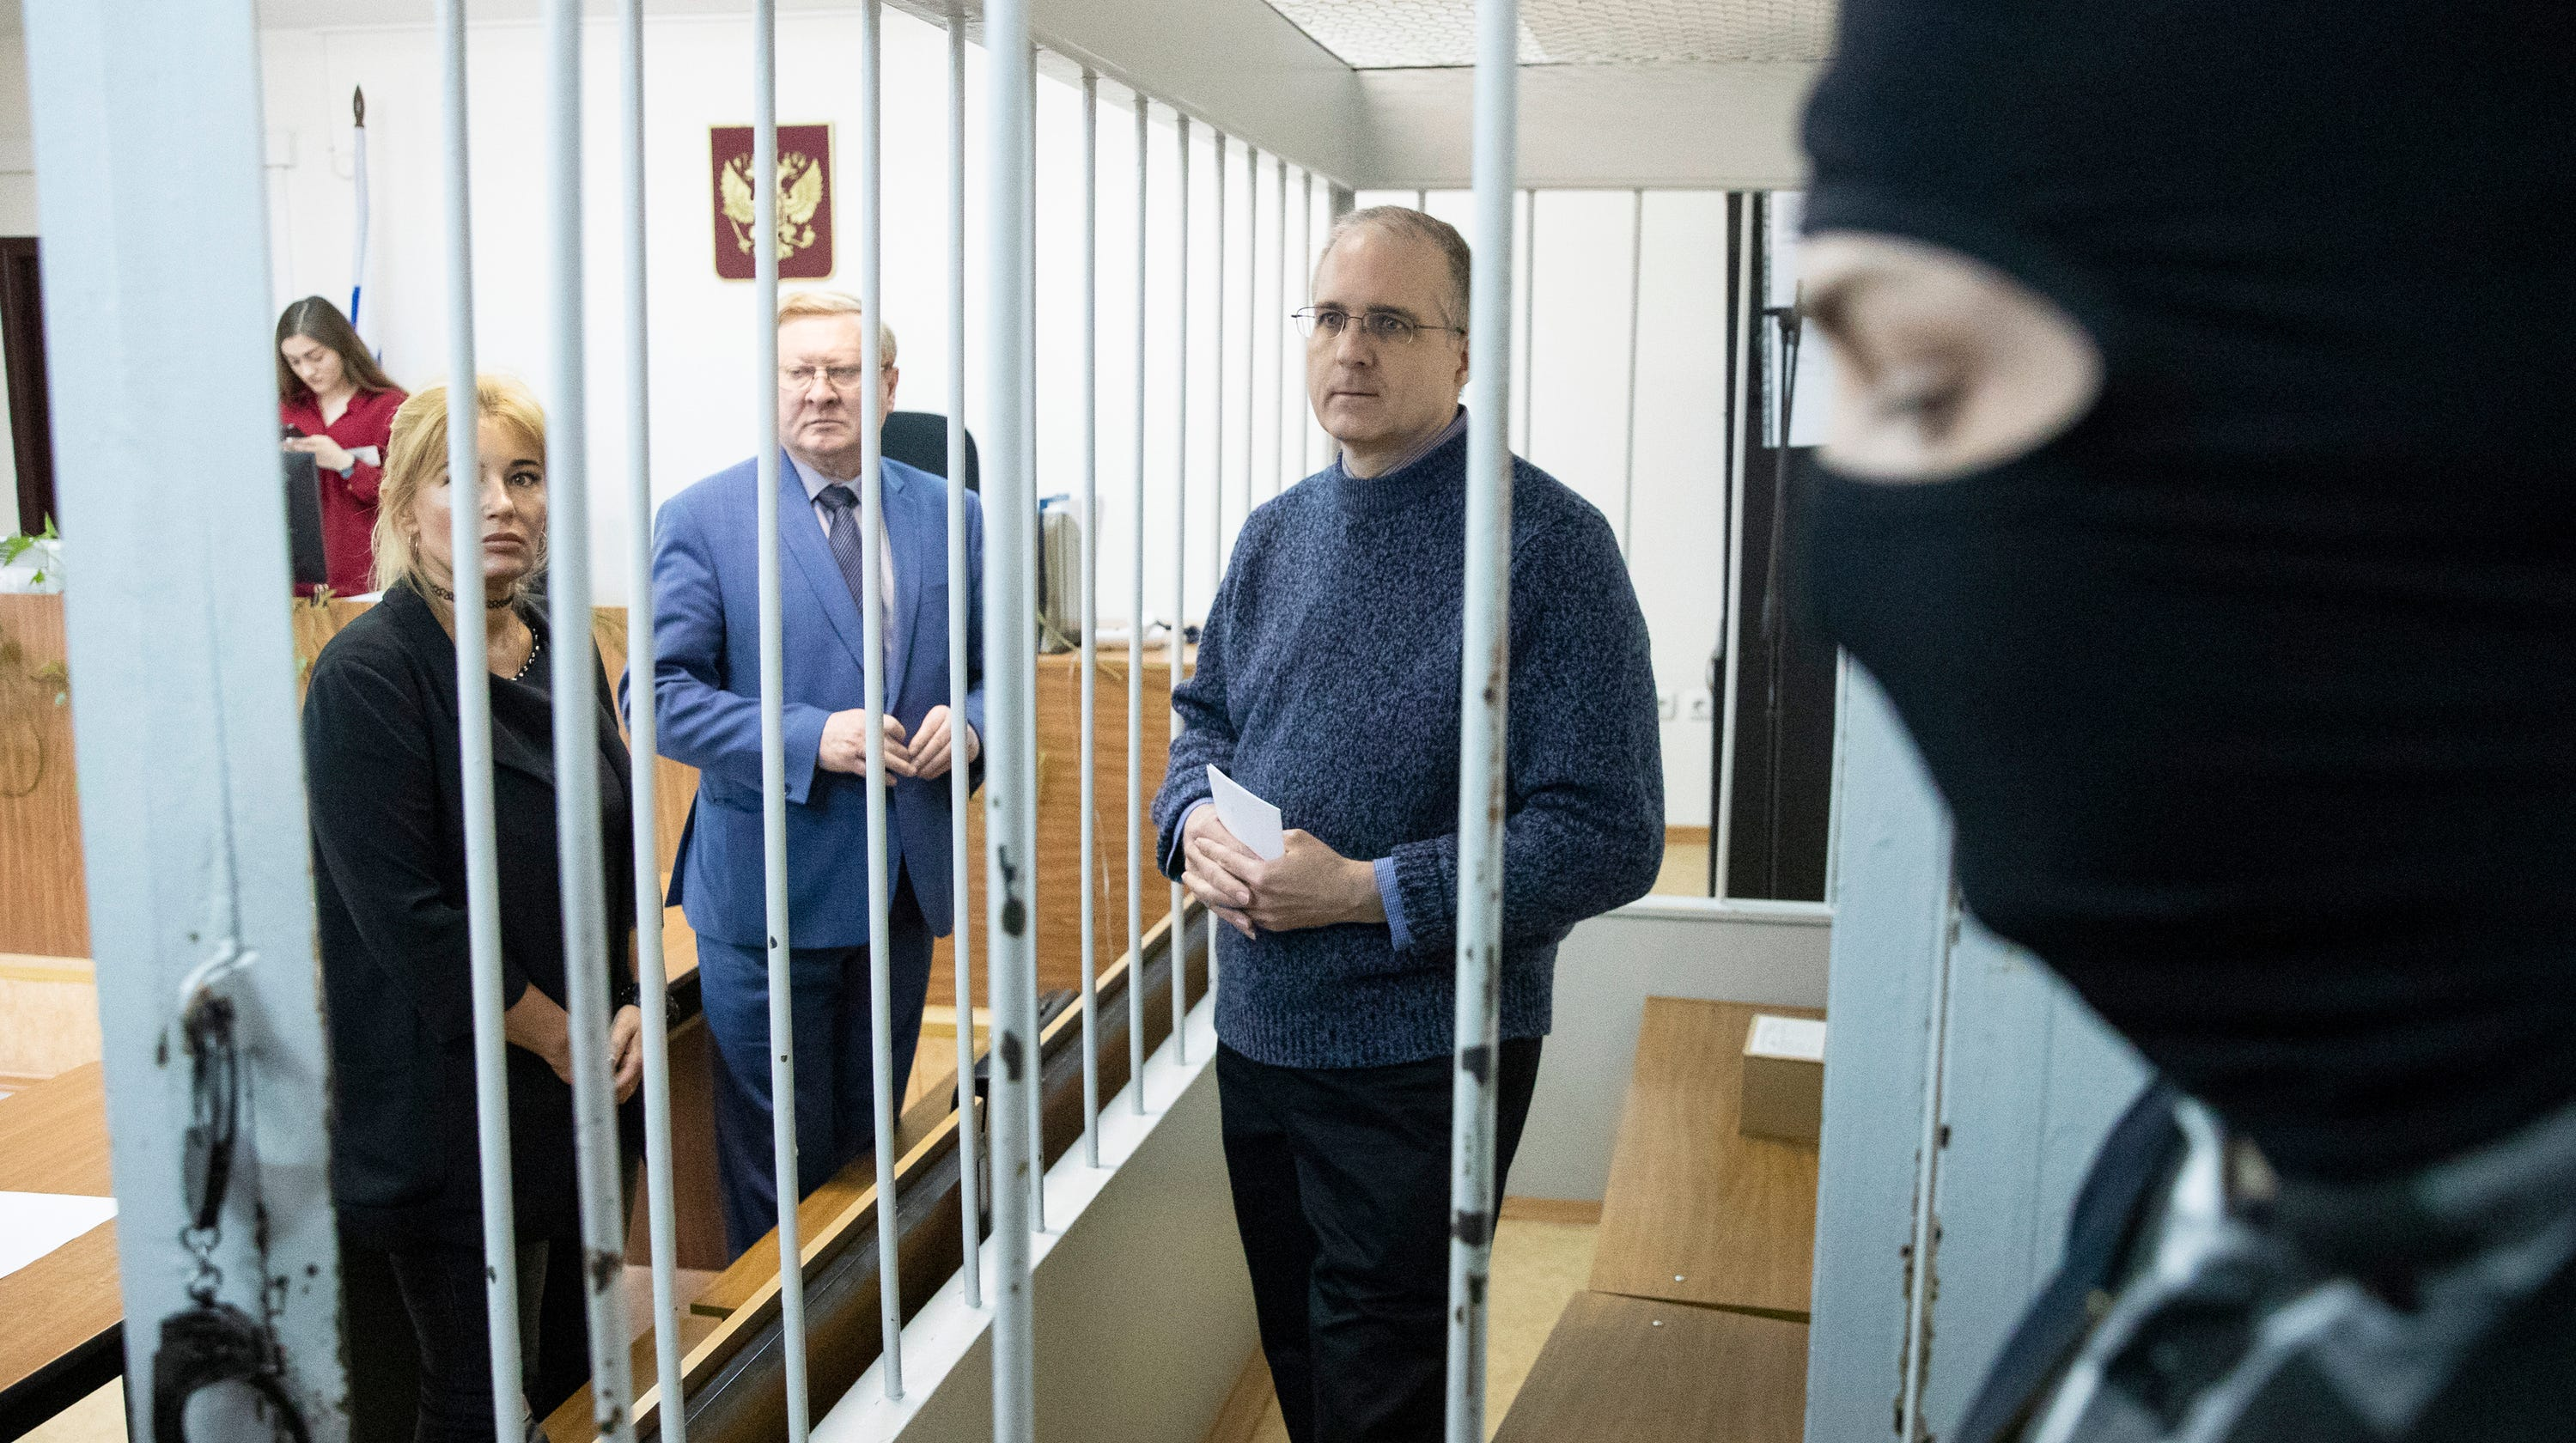 American accused of being a spy says he's being threatened, abused in Russian prison